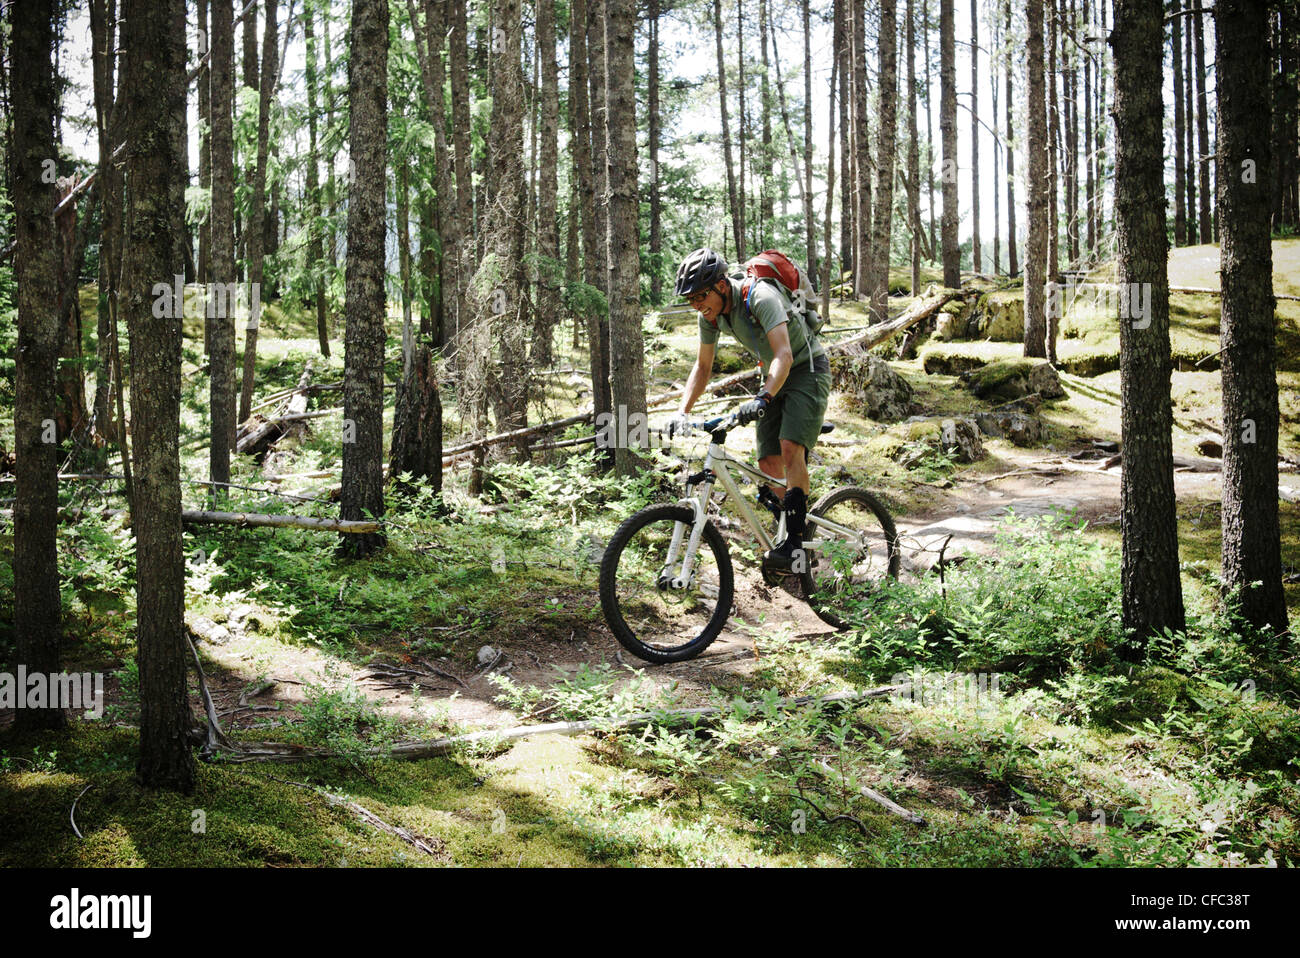 Man riding through the forest on Kill Me Thrill Me near Whistler, British Columbia, Canada - Stock Image